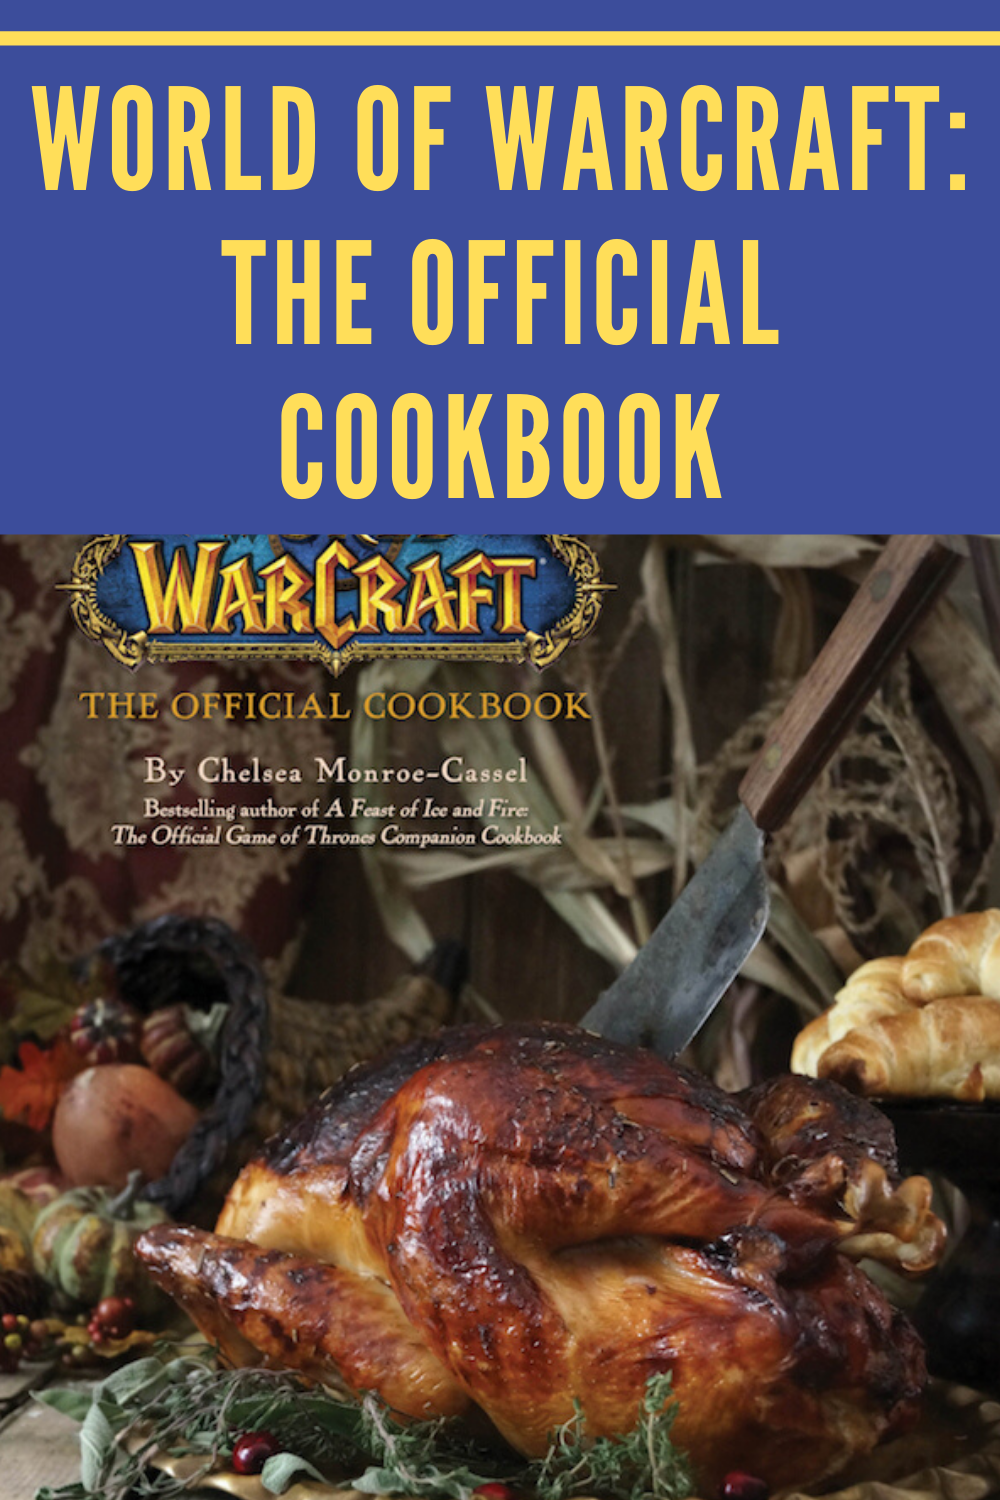 Prepare a feast fit for a warchief with World of Warcraft: The Official Cookbook, a delicious compendium of recipes inspired by the hit online game from Blizzard Entertainment.  #warcraft #worldofwarcraft #wow #blizzard #battleforazeroth #blizzardentertainment #gaming #forthehorde #horde #wowclassic #forthealliance #alliance #warcraftphotography #gamer #bfa #classicwow #mmorpg #warcraftart #worldofwarcraftclassic #blizzcon #azeroth #blizzardgames #worldofwarcraftaddict #gamergirl #pcgaming